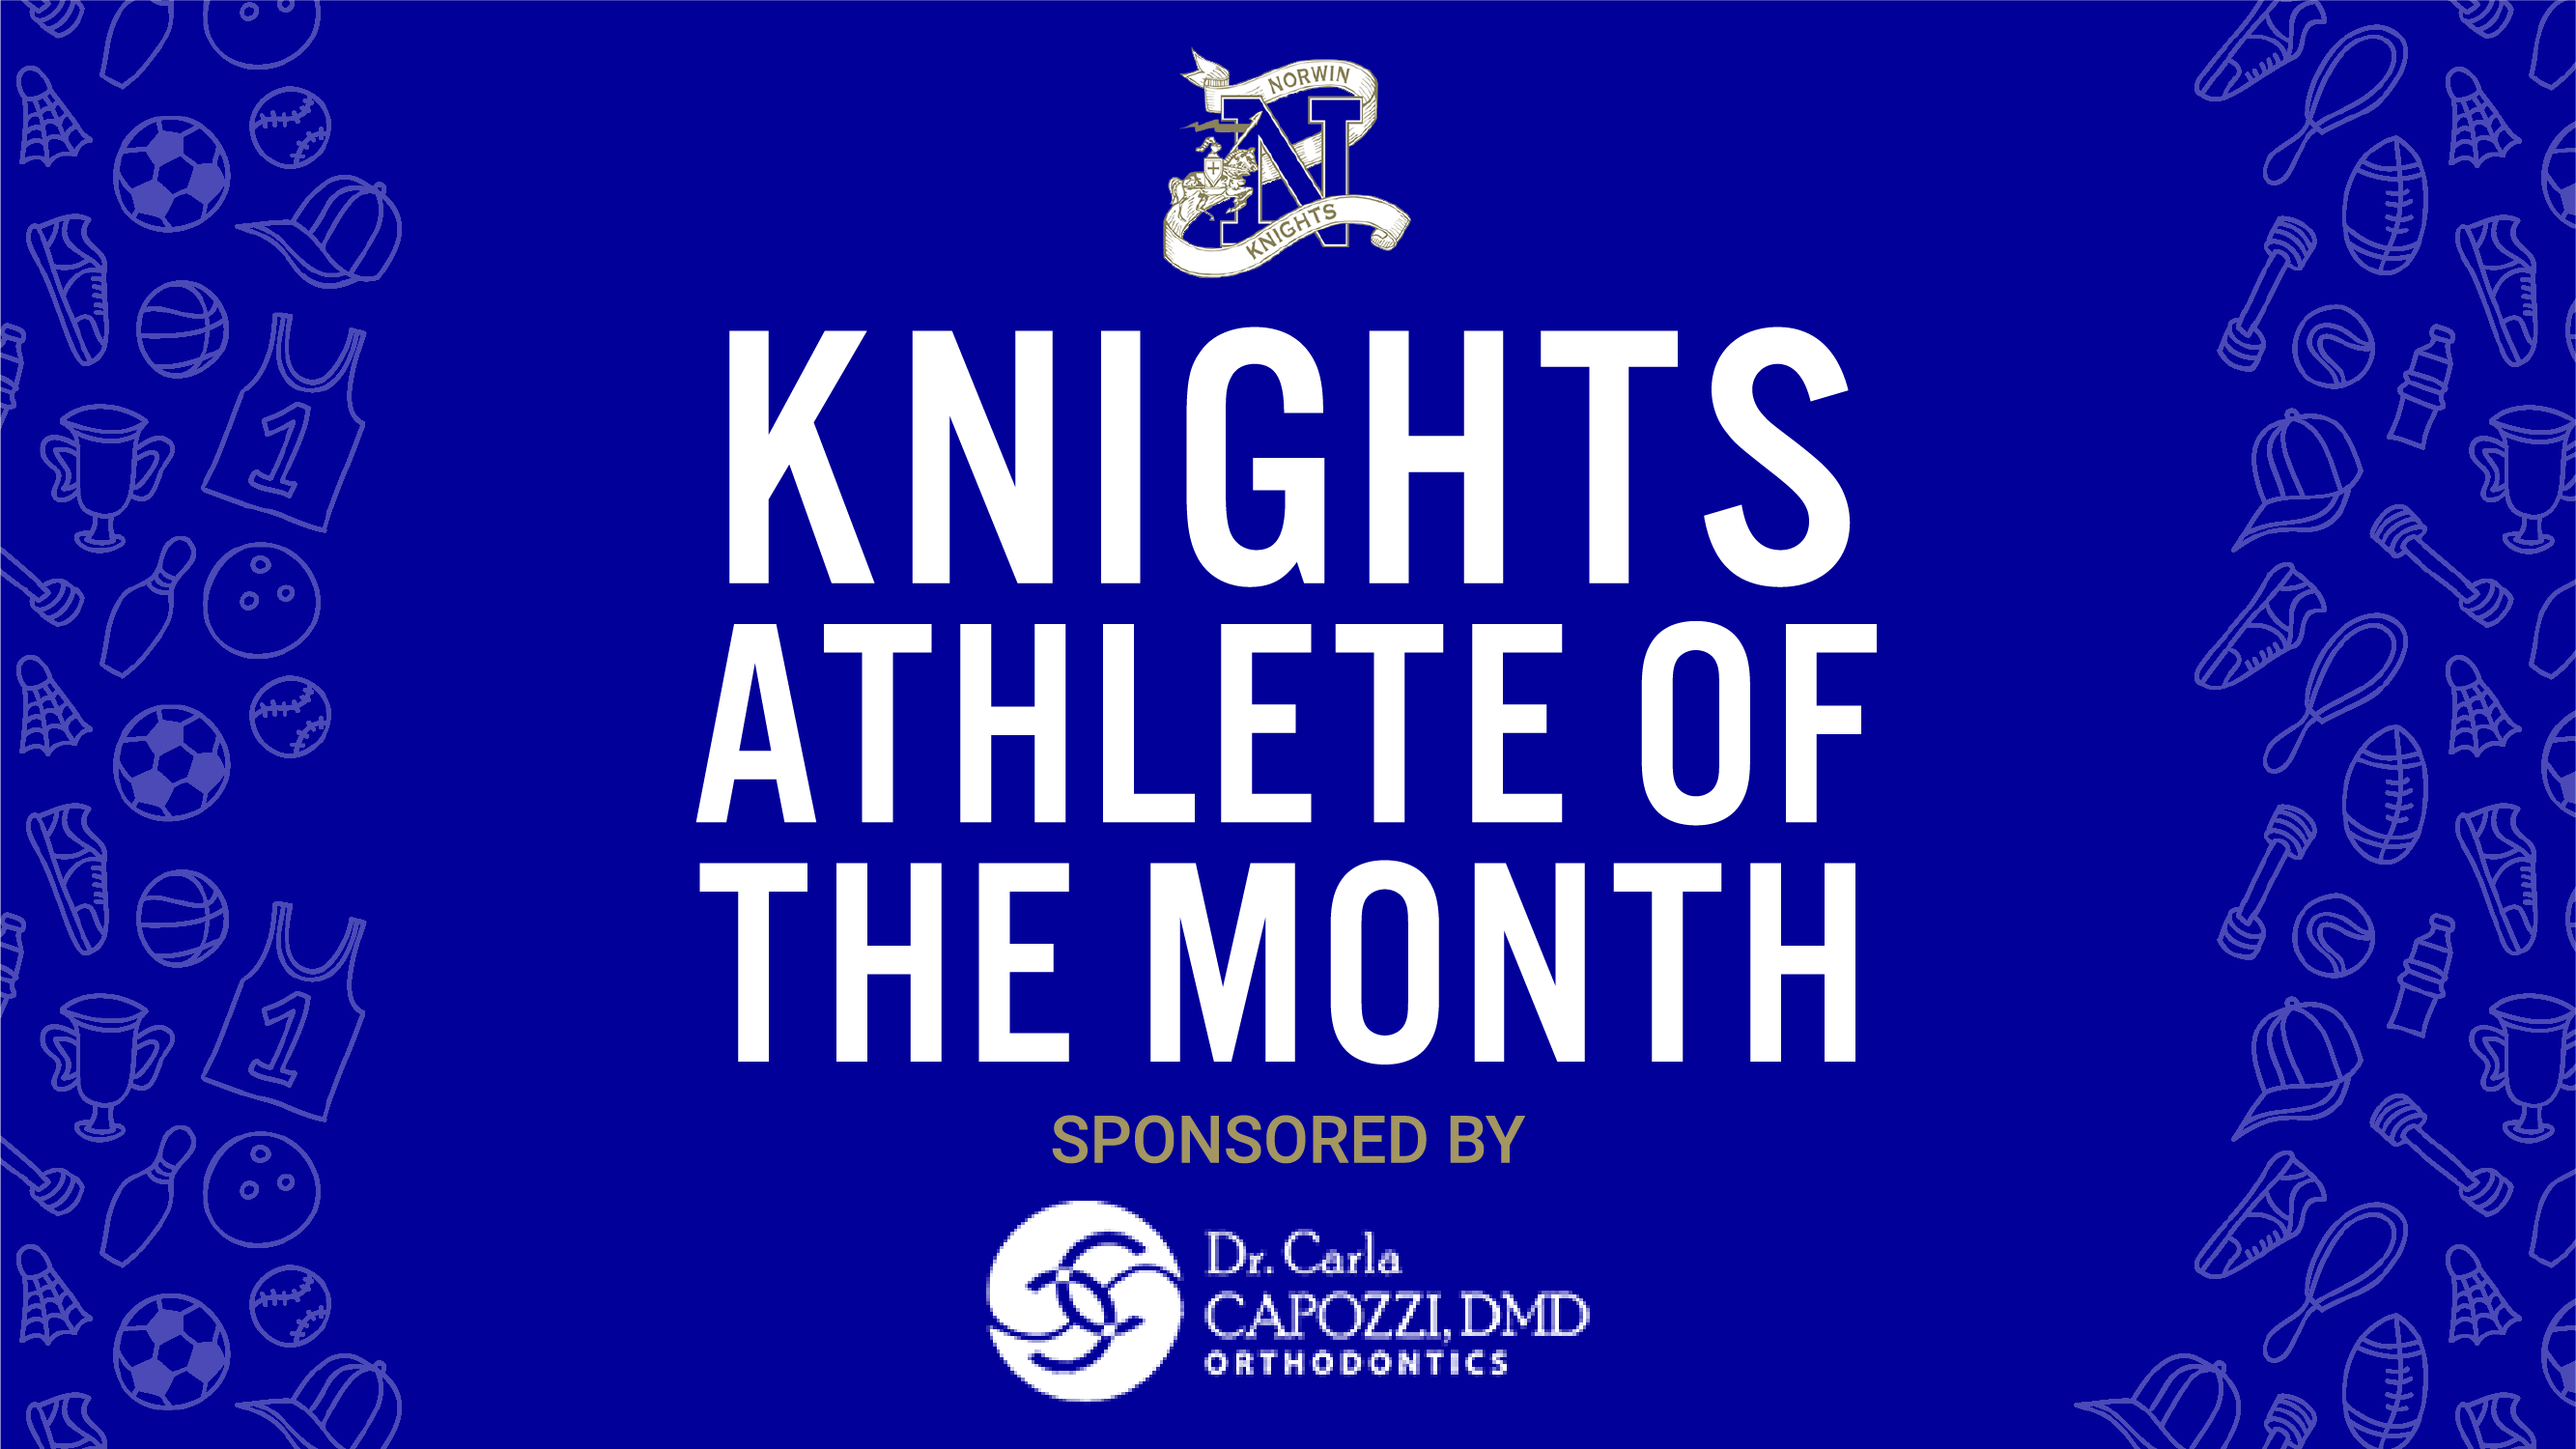 Congratulations to Carter Breen, September's athlete of the month! Sponsored by Dr.Carla Capozzi, DMD Orthodontics